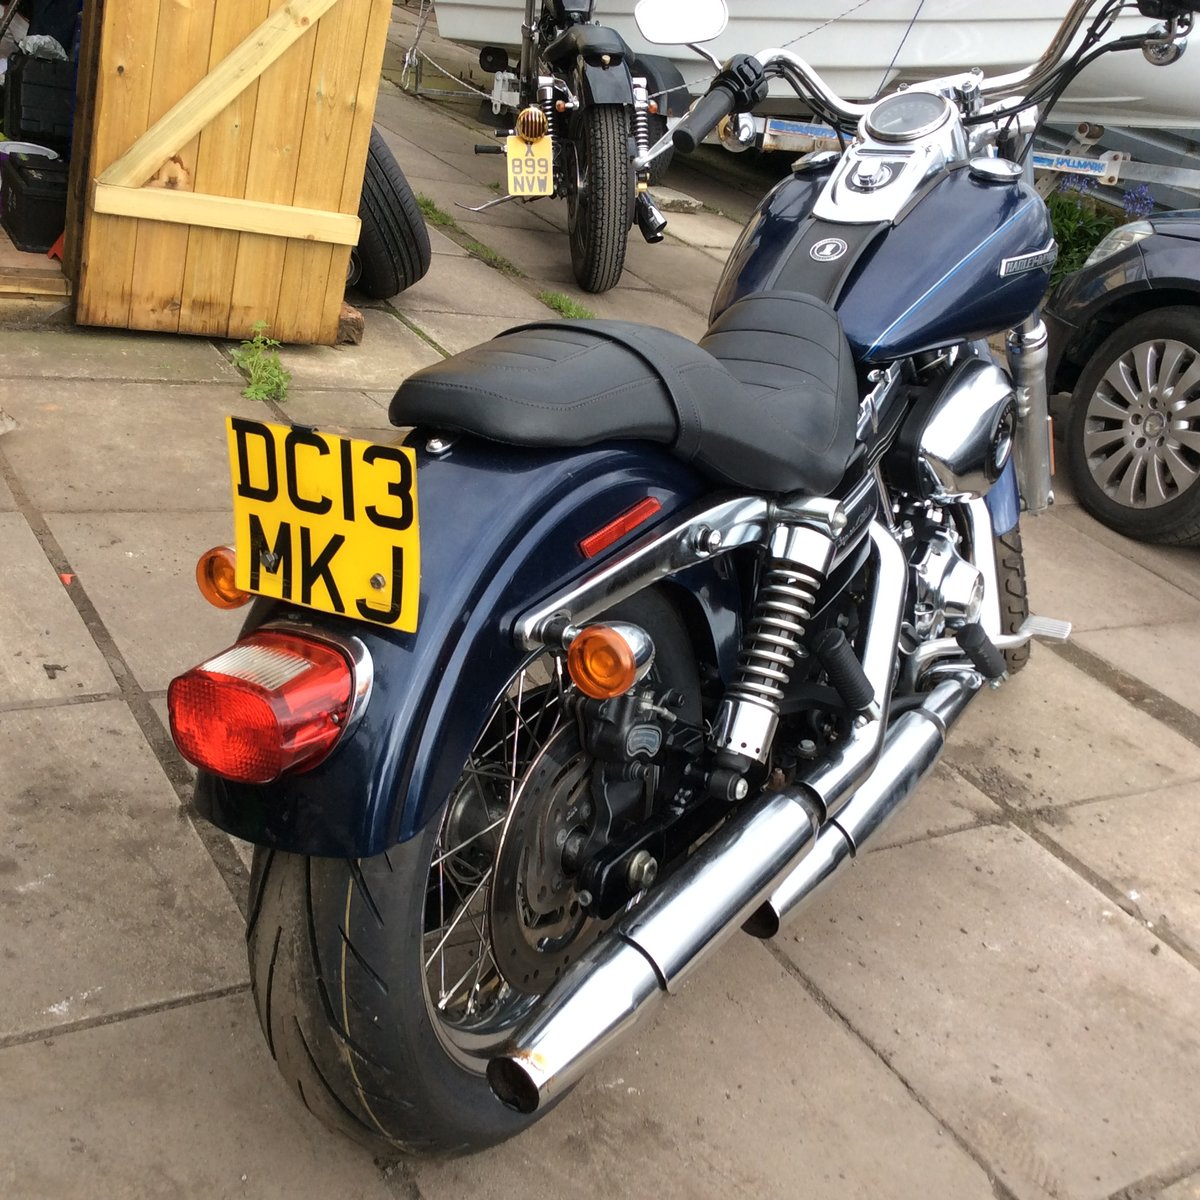 2013 Harley davidson dyna superglide For Sale (picture 6 of 6)